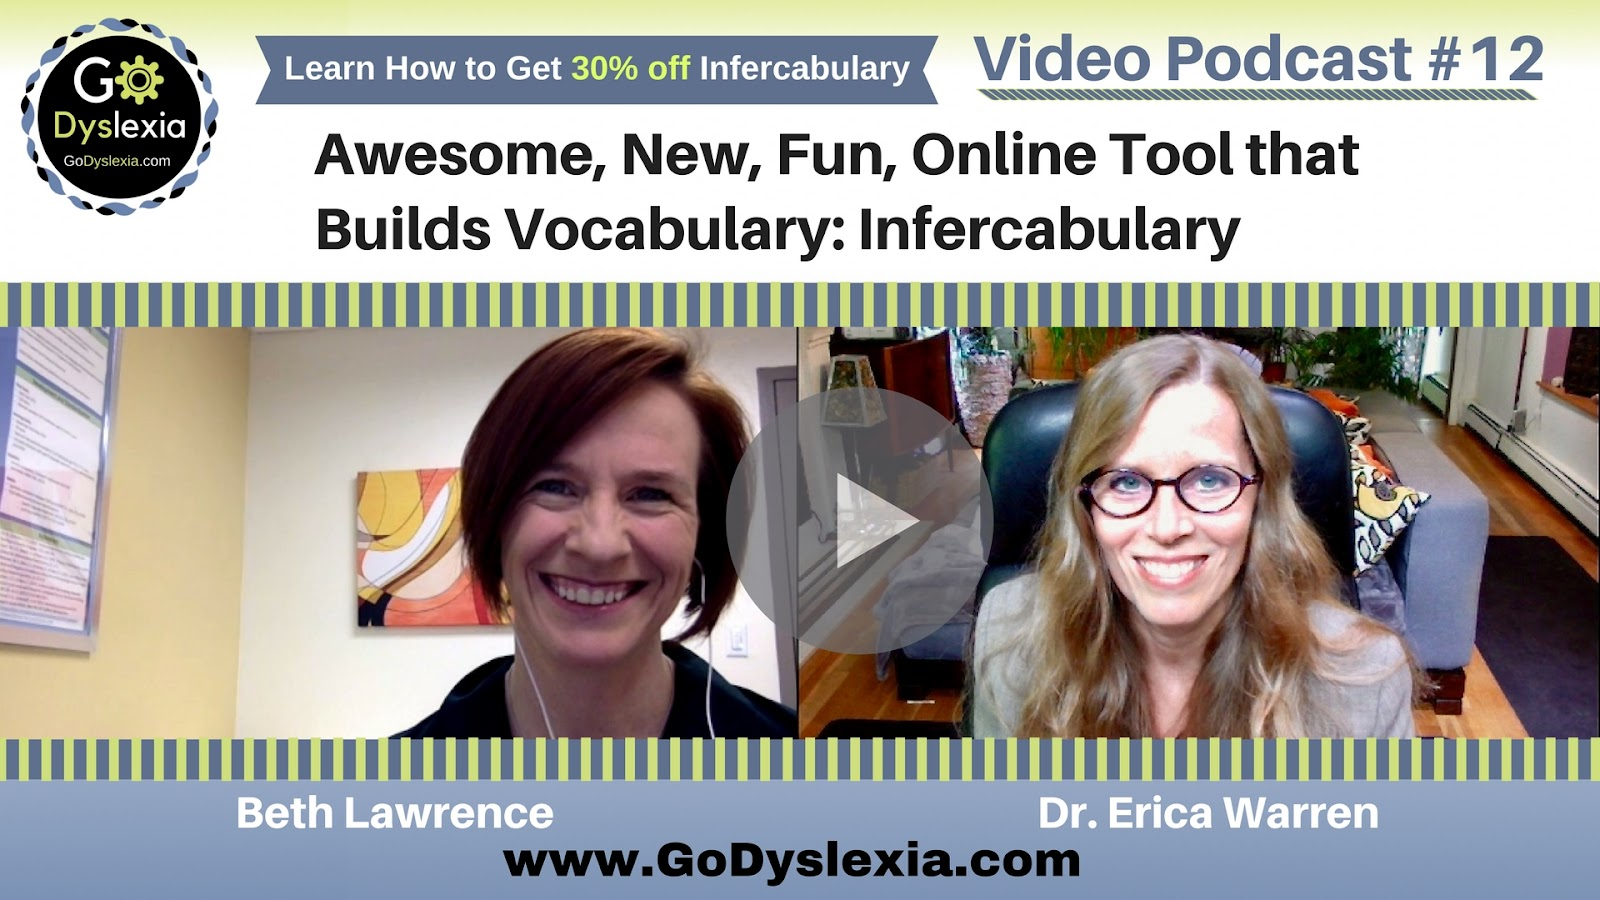 Awesome, New Fun Online Tool that Builds Vocabulary - Infercabulary